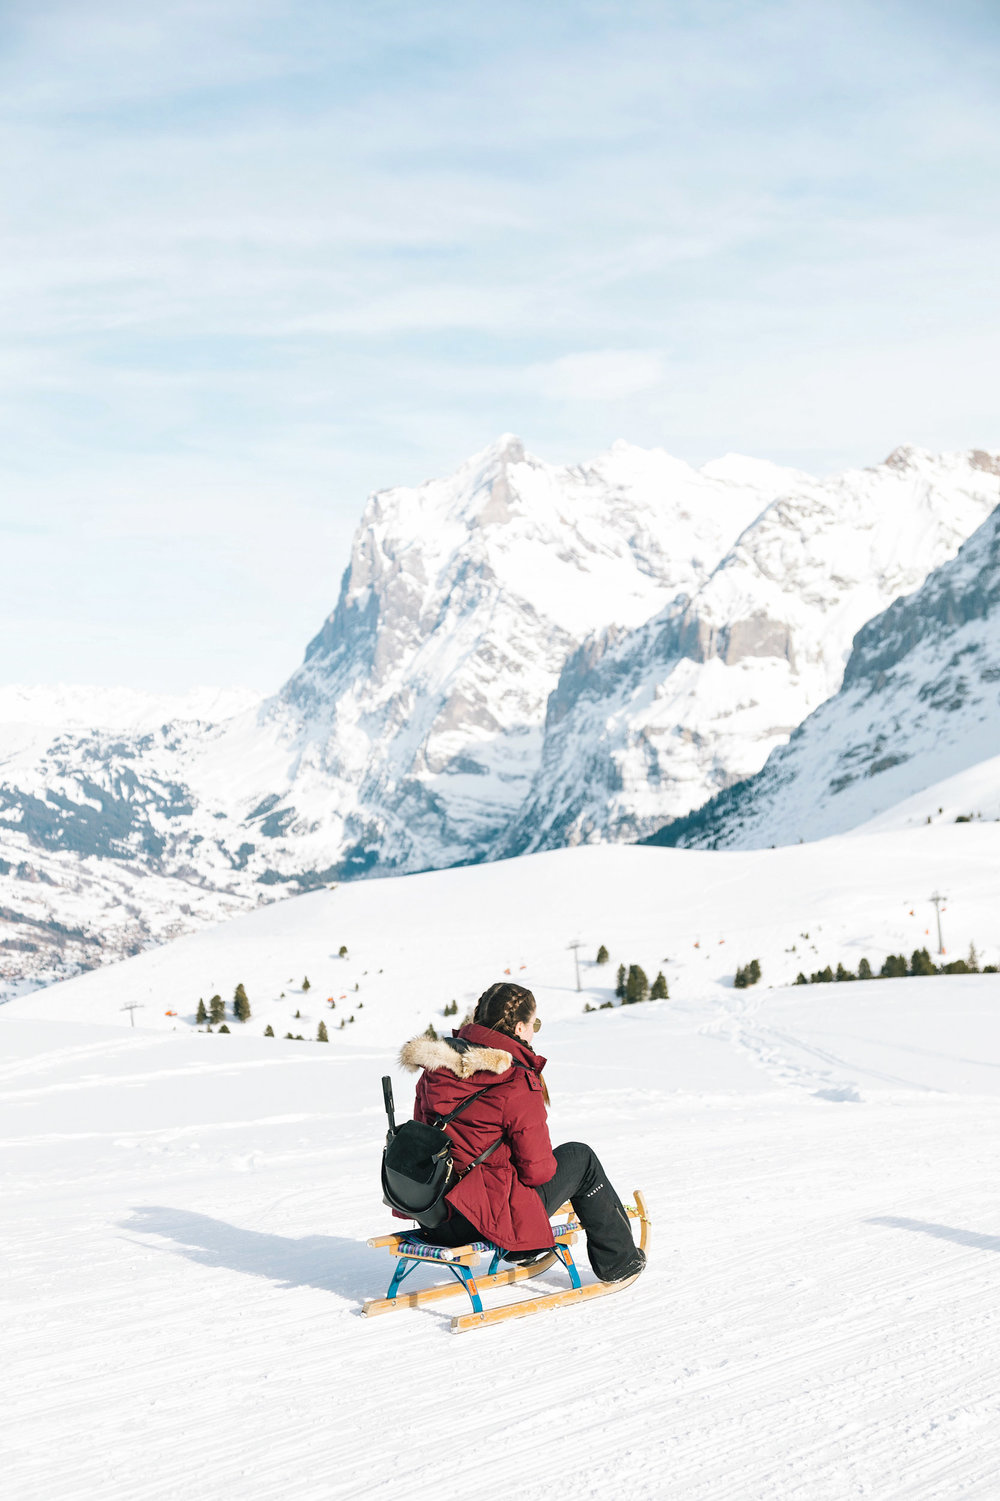 The most fun winter adventure in Switzerland - sledging!